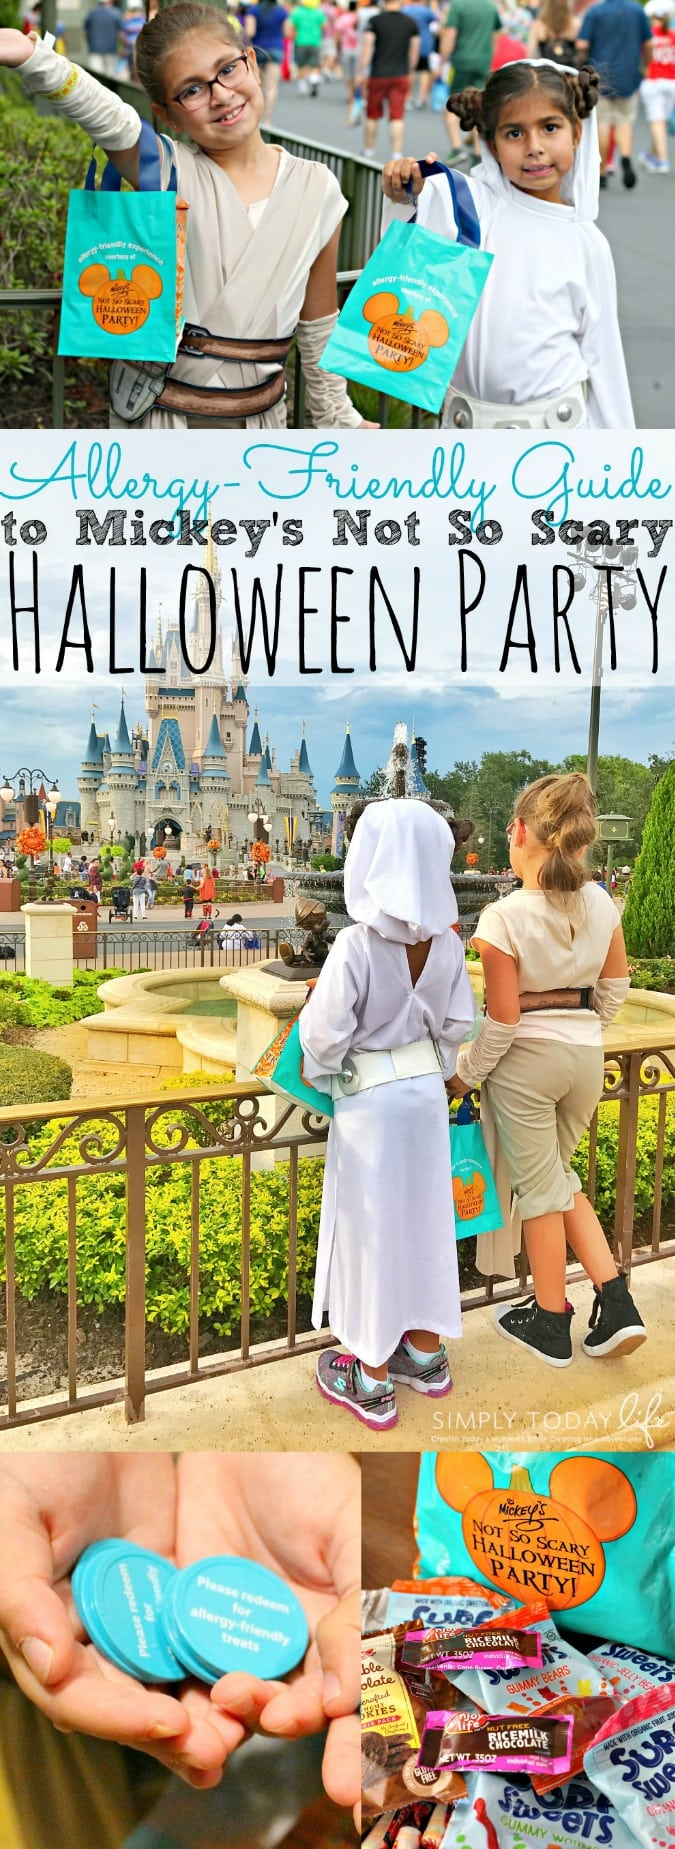 If you're heading to Walt Disney World Florida this year to visit Mickey's Not So Scary Halloween Party make sure to check out our Allergy-Friendly Guide! Includes samples of candy given out at the party, how the Teal Token works, locations for candy trick-or-treating, and some tips and tricks for Mickeys Not So Scary Halloween Party with kids! (hosted) - simplytodaylife.com